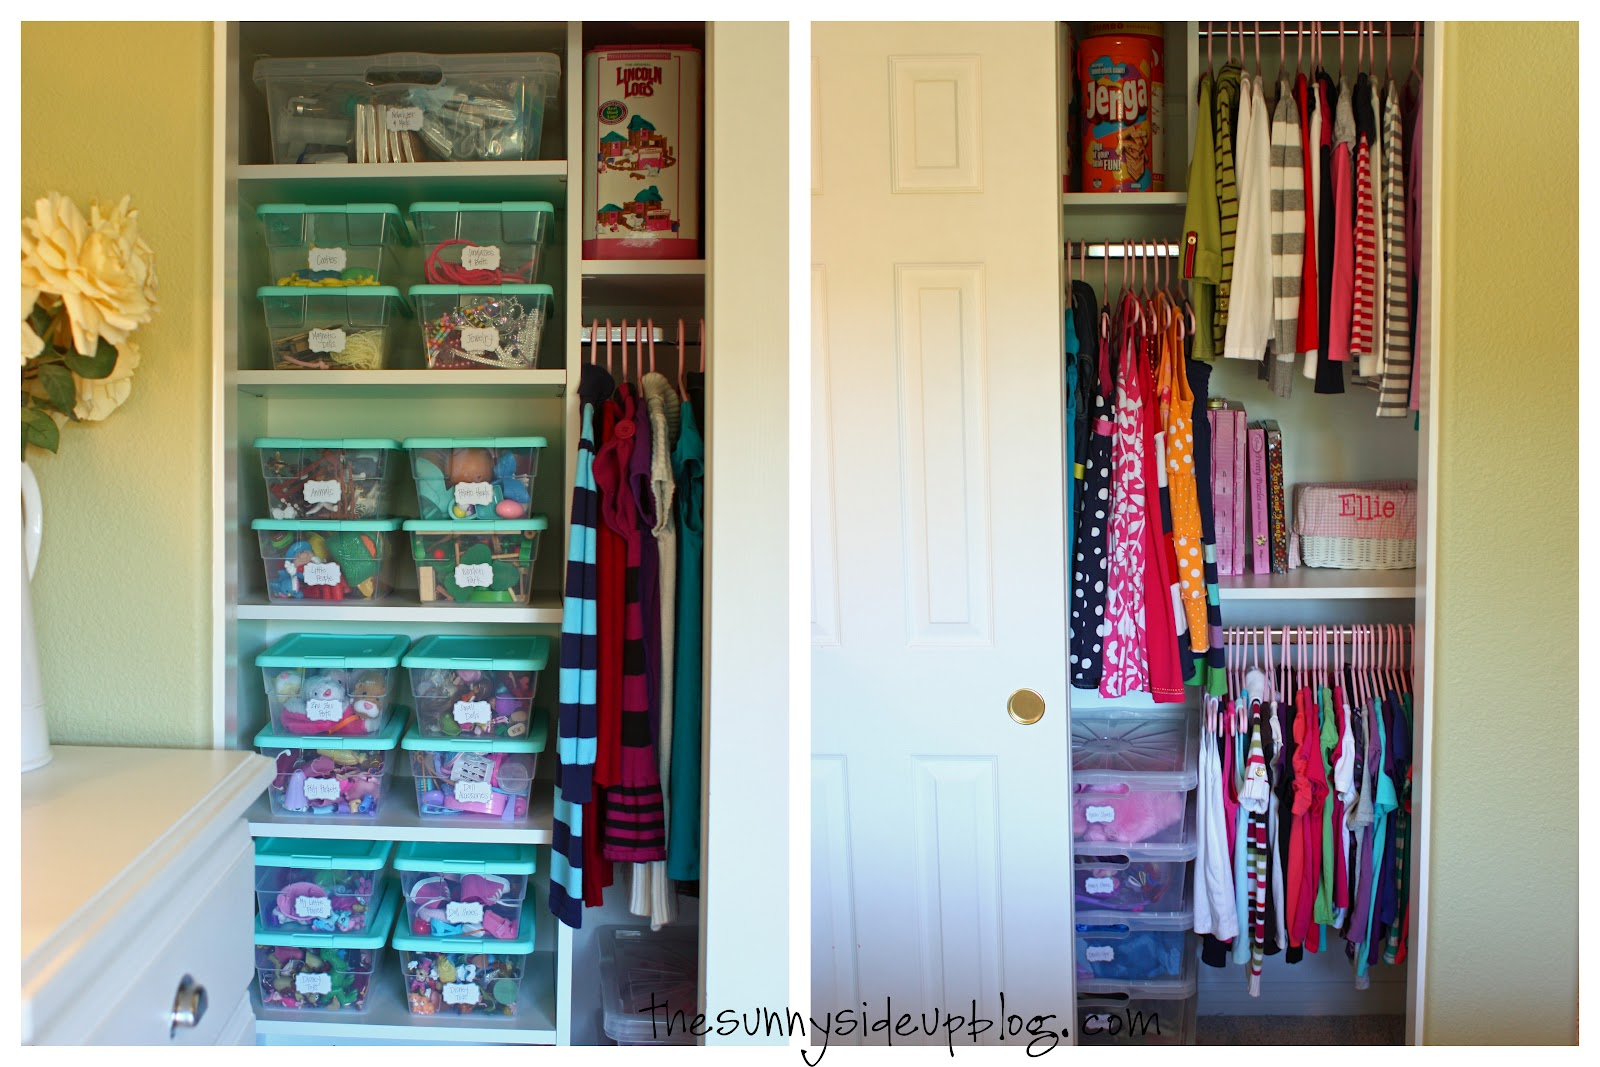 Kids Closet With Drawers Throughout Try To Stay On Top Of My Kids Closets And Drawers By Constantly Getting Rid Clothes That Dont Fit Or They Arent Wearing Organized Closetdrawers The Sunny Side Up Blog